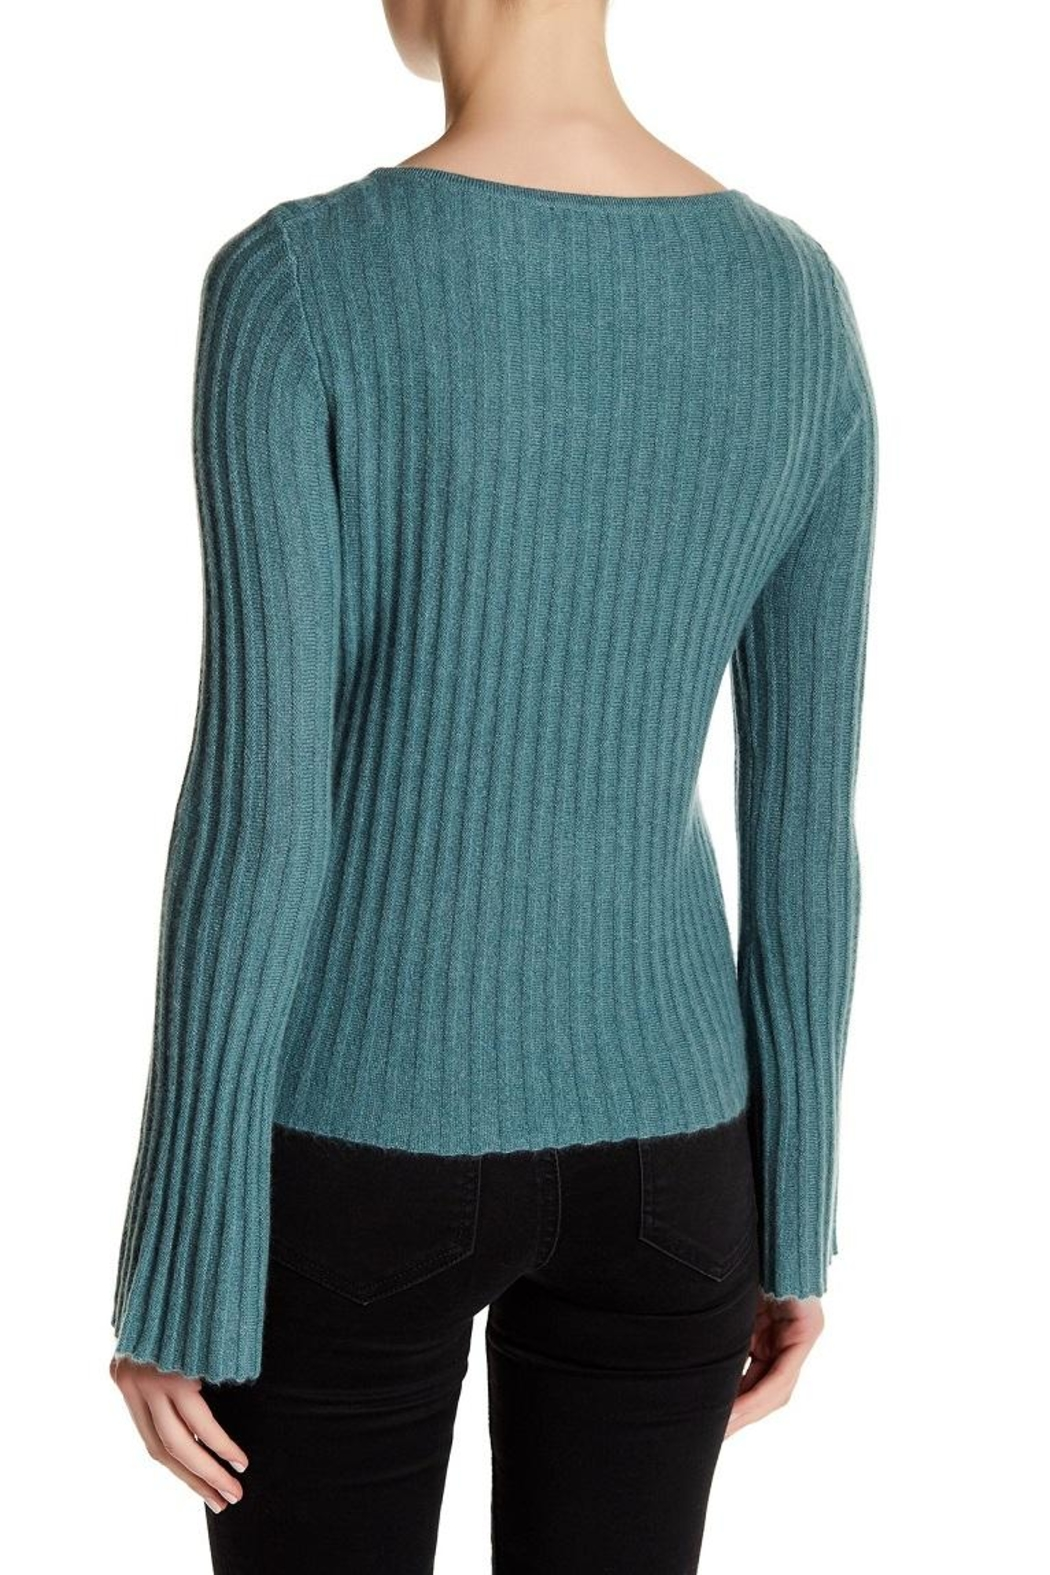 360 Cashmere Eugenie Cashmere Sweater - Front Full Image